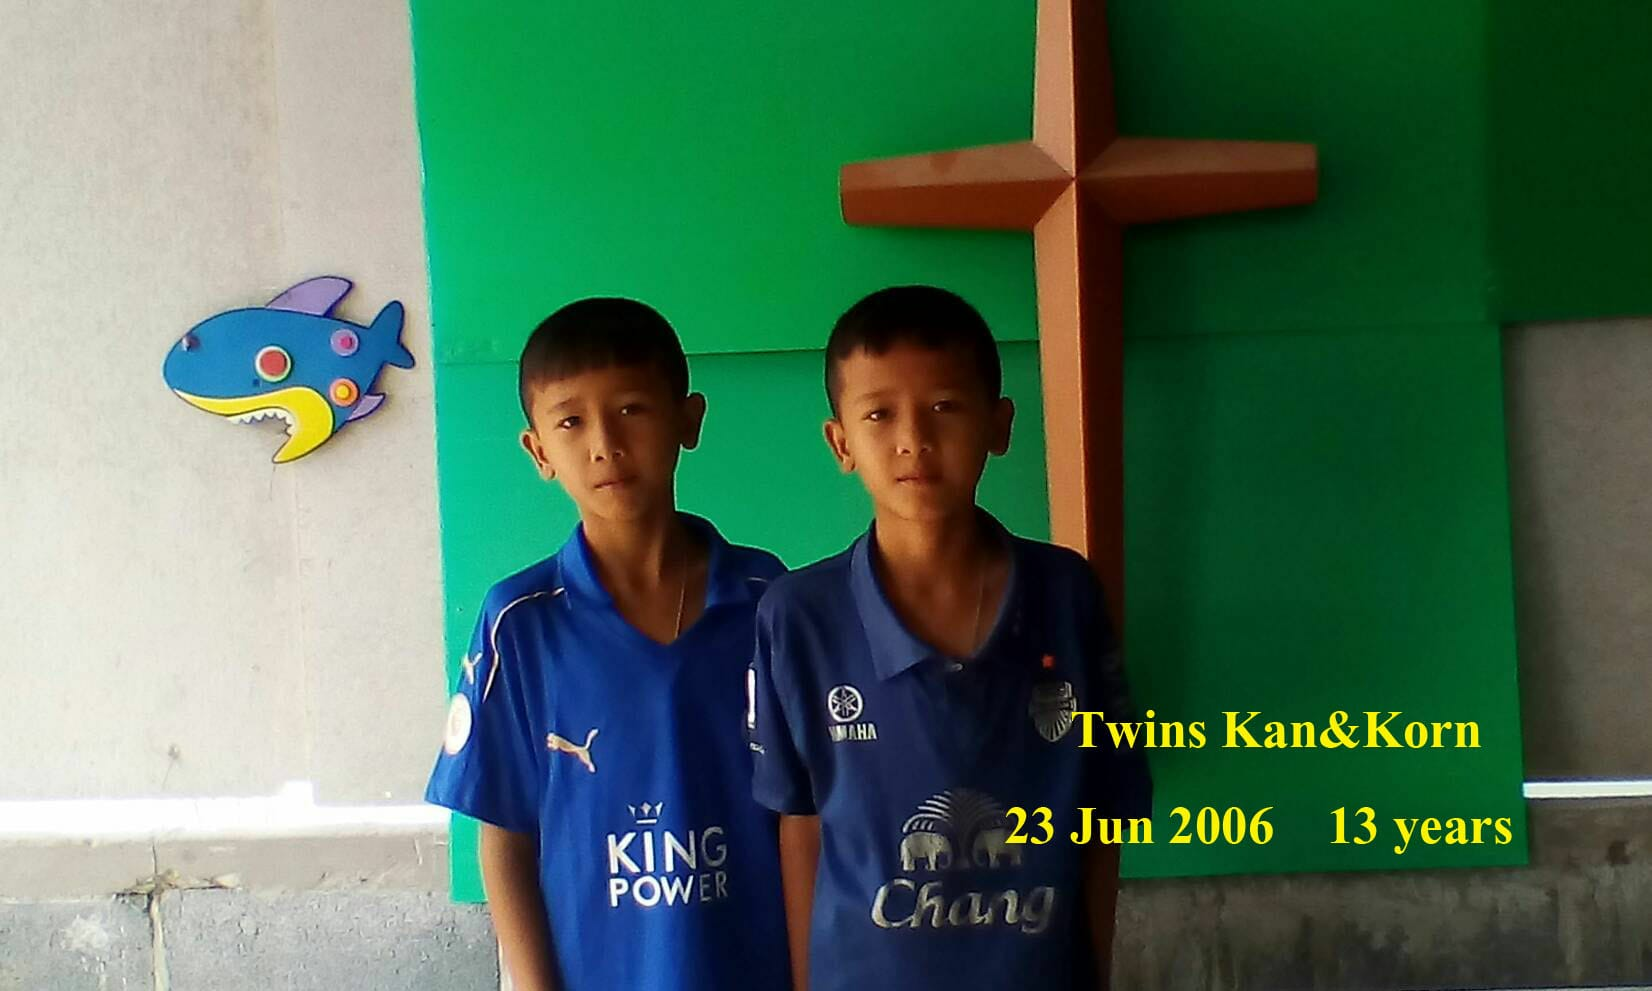 Kan and Korn (13 years old, boys)